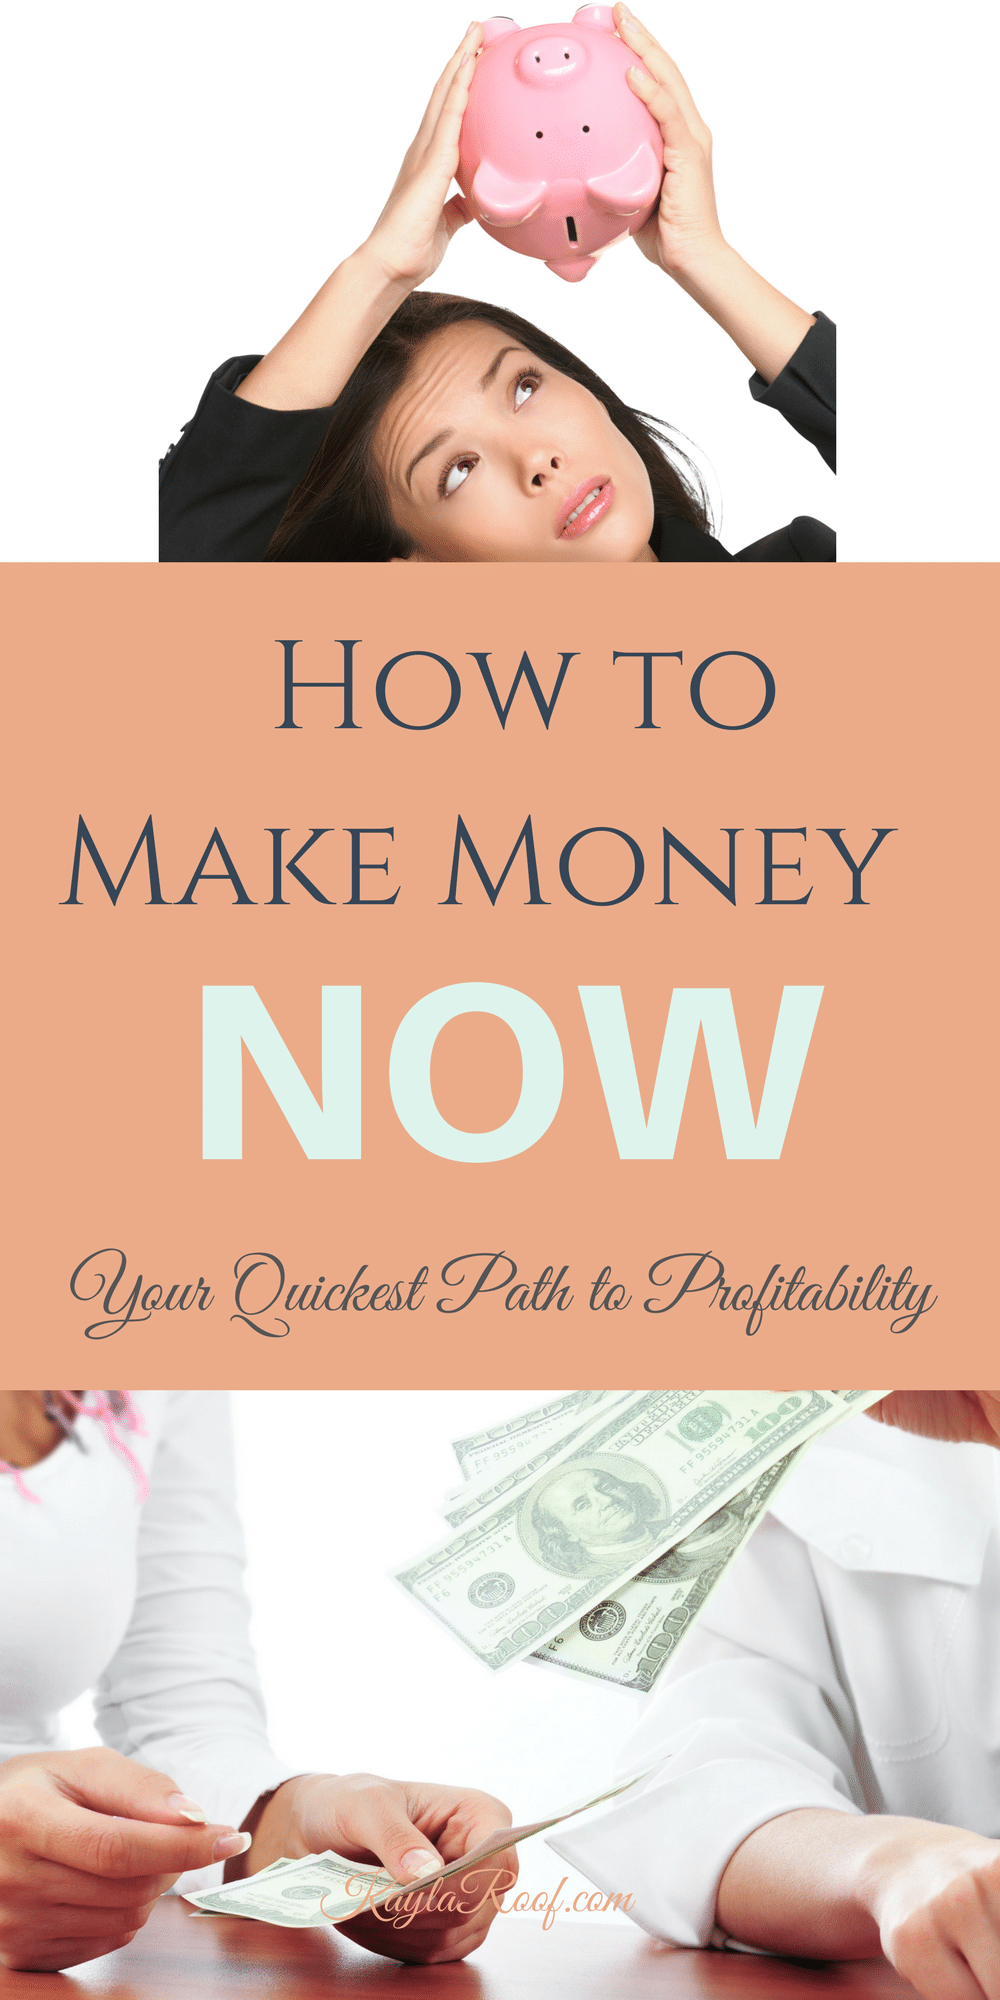 How to Make Money Now-Your Quickest Path to Profitability When Starting Your Own Business |KaylaRoof.com